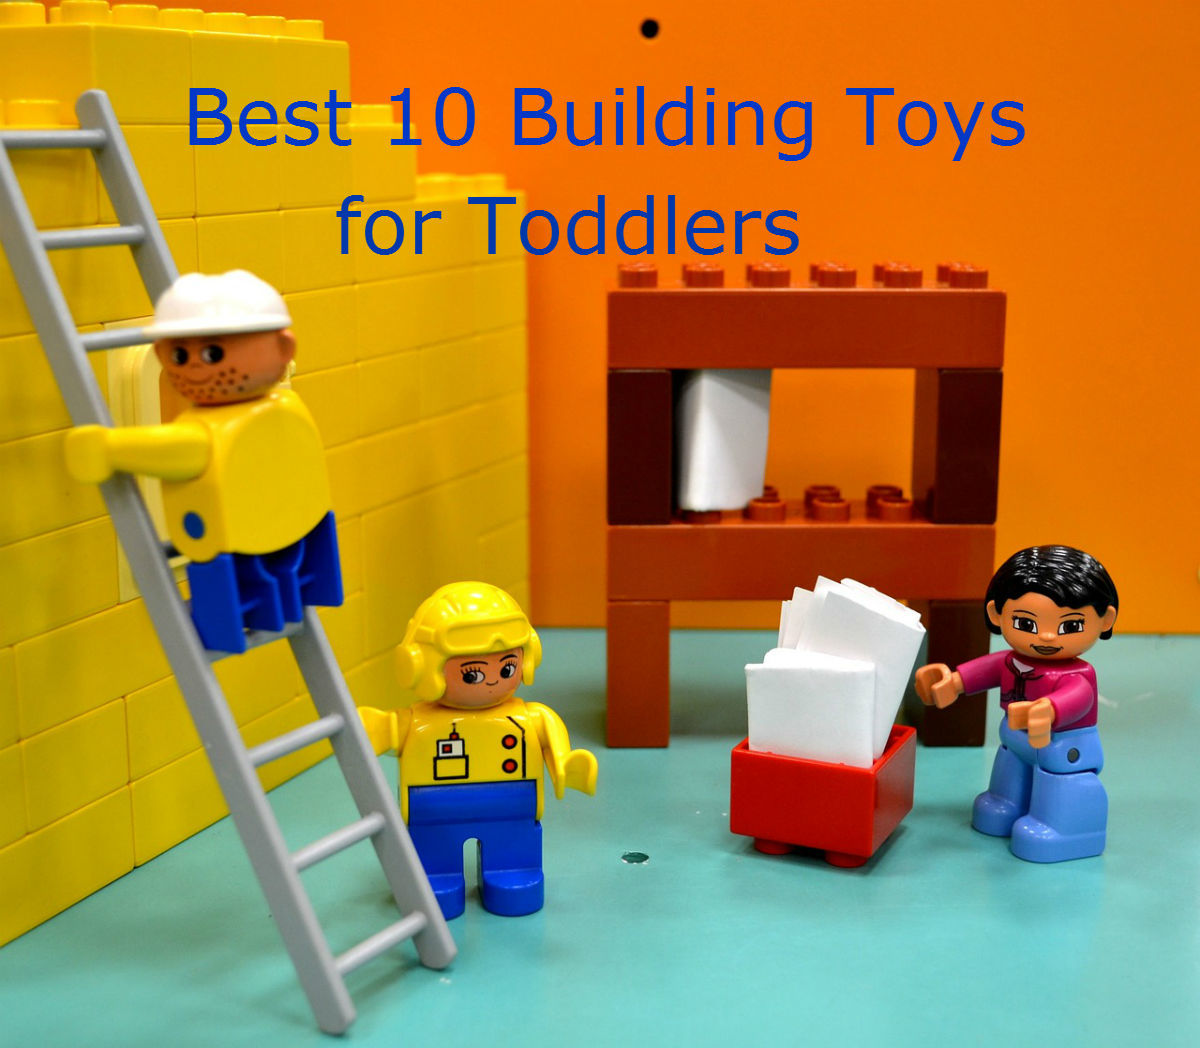 Headline for Best 10 Building Toys for Toddlers 2015